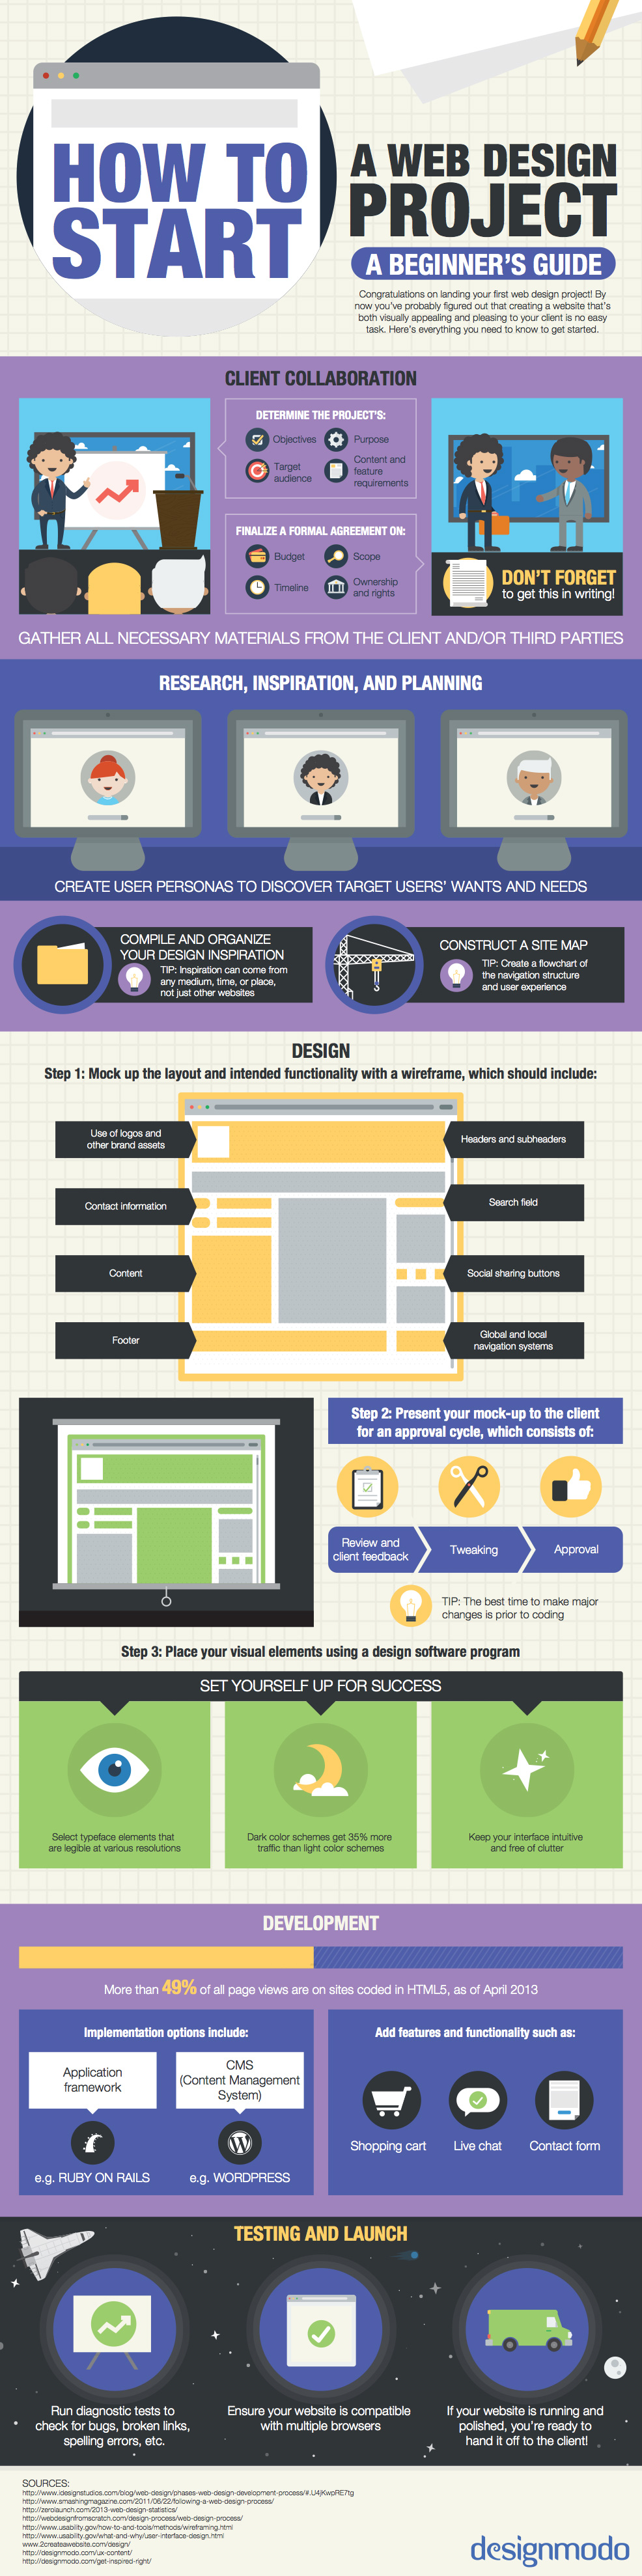 Infographic: How to start a web design project